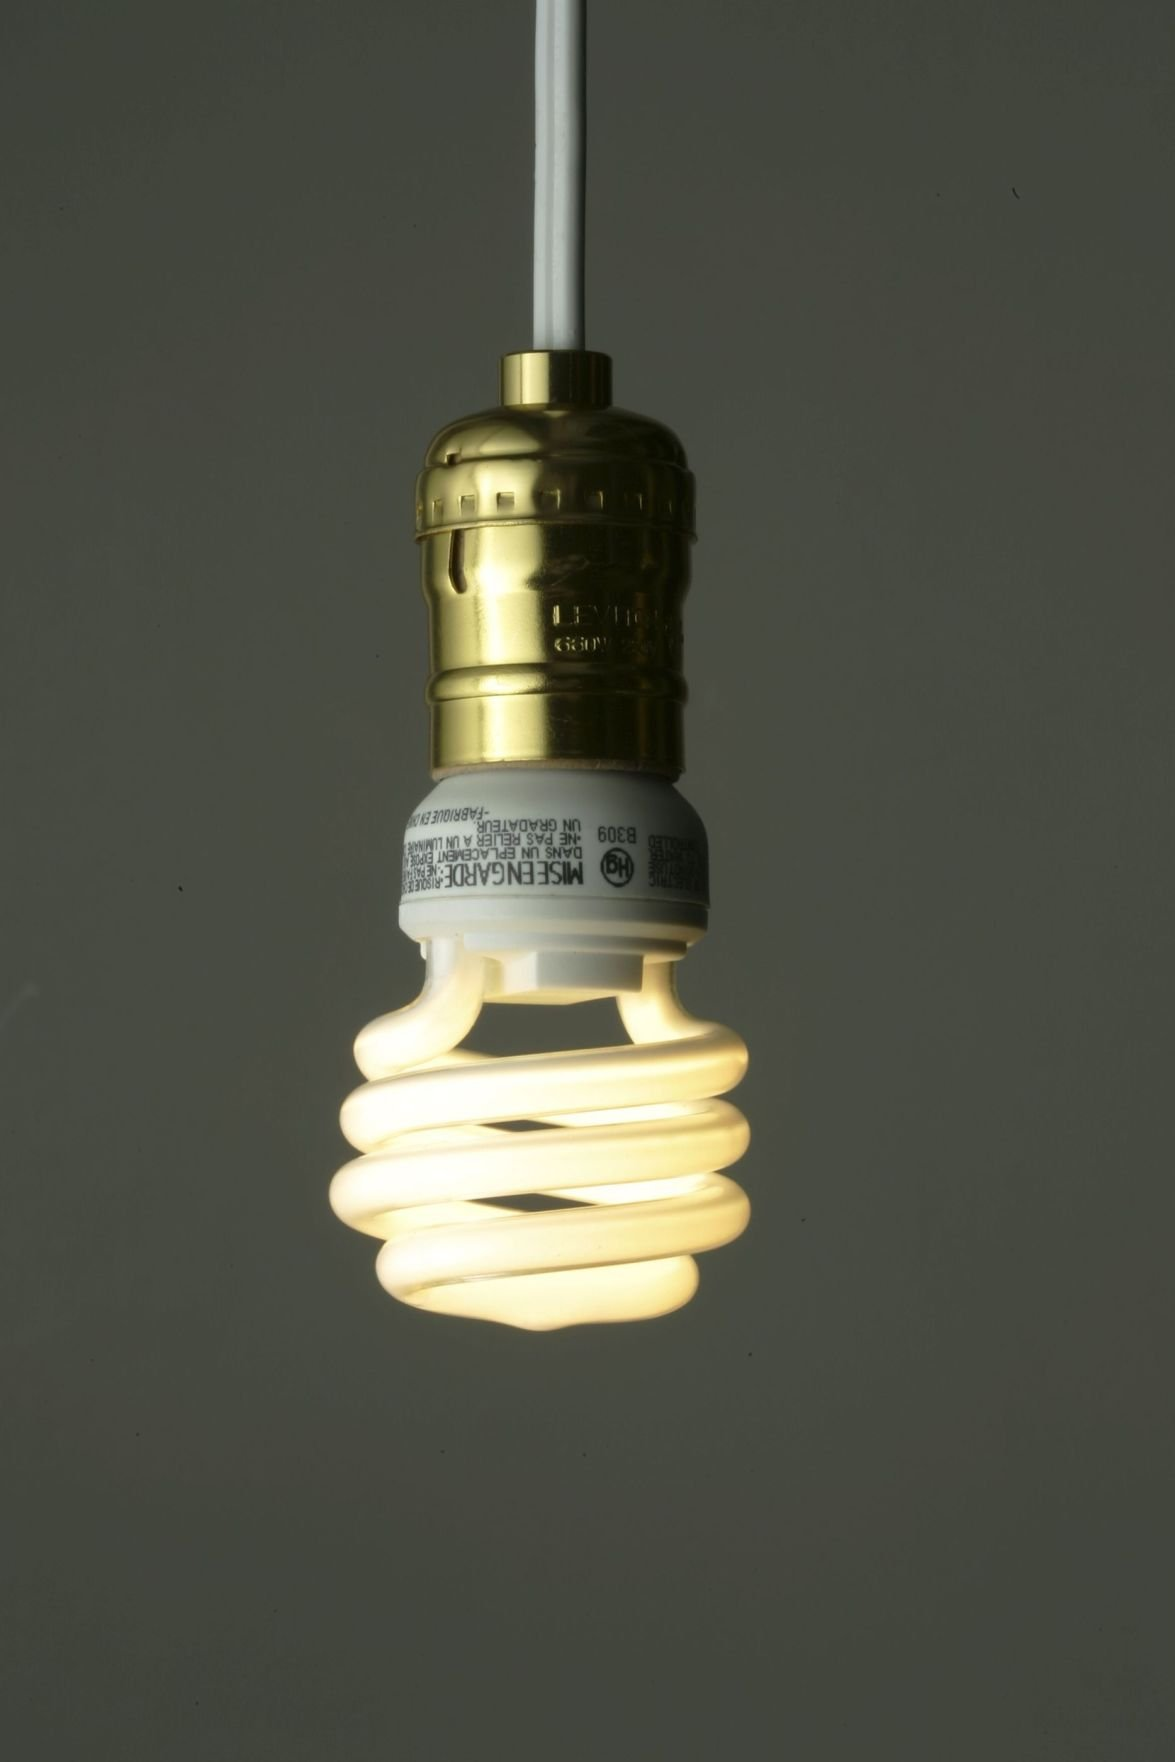 GE plans to phase out compact fluorescent light bulbs